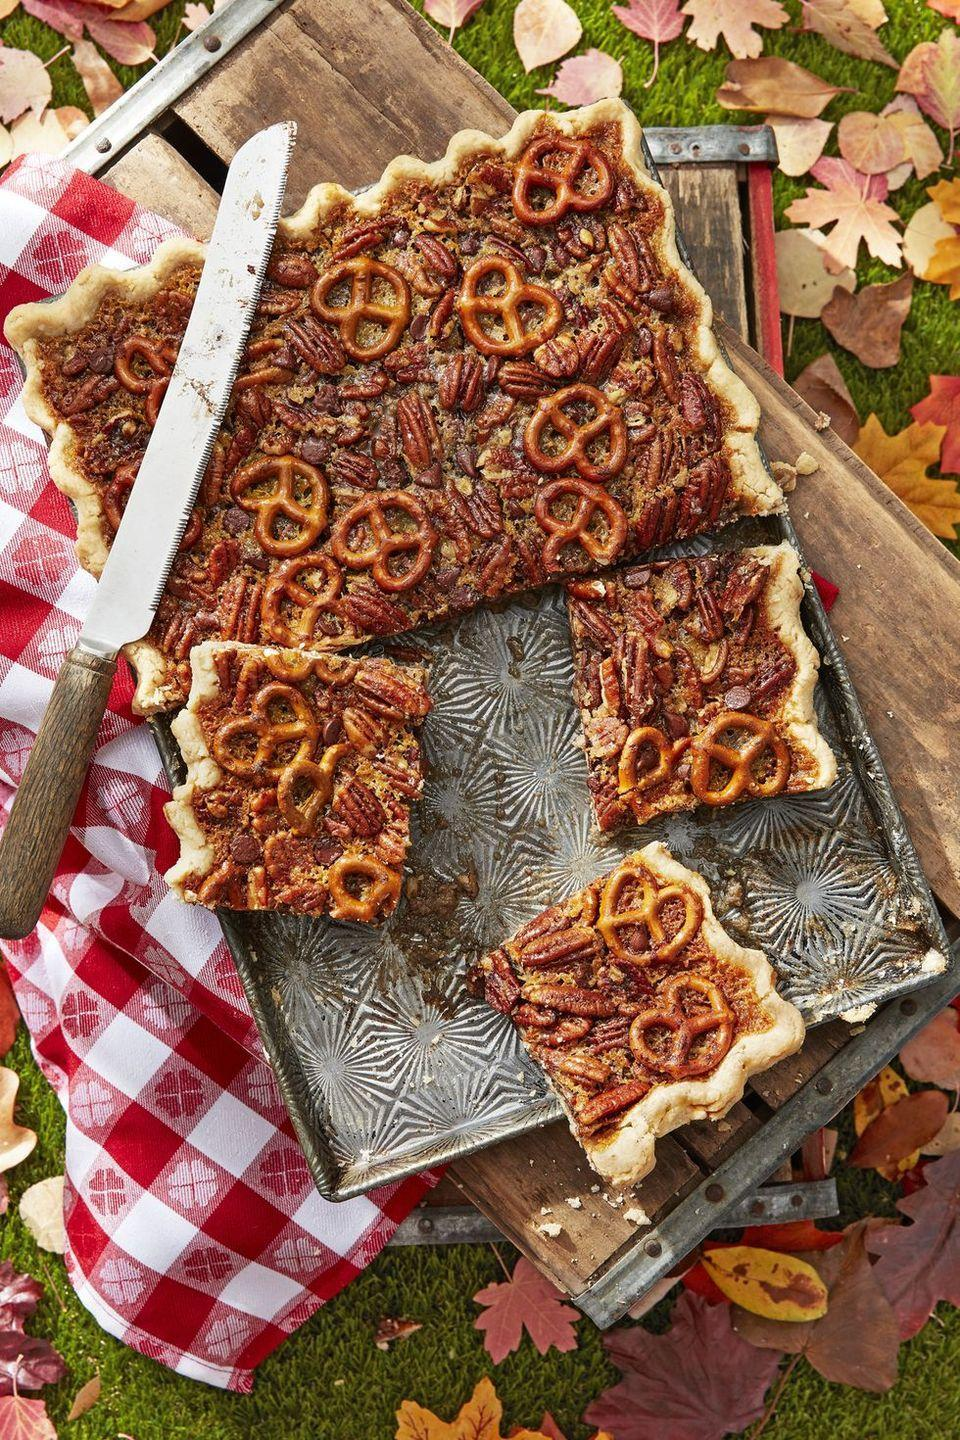 "<p>A sheet pan serves-a-crowd option for the pecan pie lovers out there. Pretzels add pops of saltiness to an otherwise sweet, chocolatey pie.</p><p><em><a href=""https://www.countryliving.com/food-drinks/a24277219/pretzel-chocolate-pecan-slab-pie-recipe/"" rel=""nofollow noopener"" target=""_blank"" data-ylk=""slk:Get the recipe from Country Living »"" class=""link rapid-noclick-resp"">Get the recipe from Country Living »</a></em></p>"